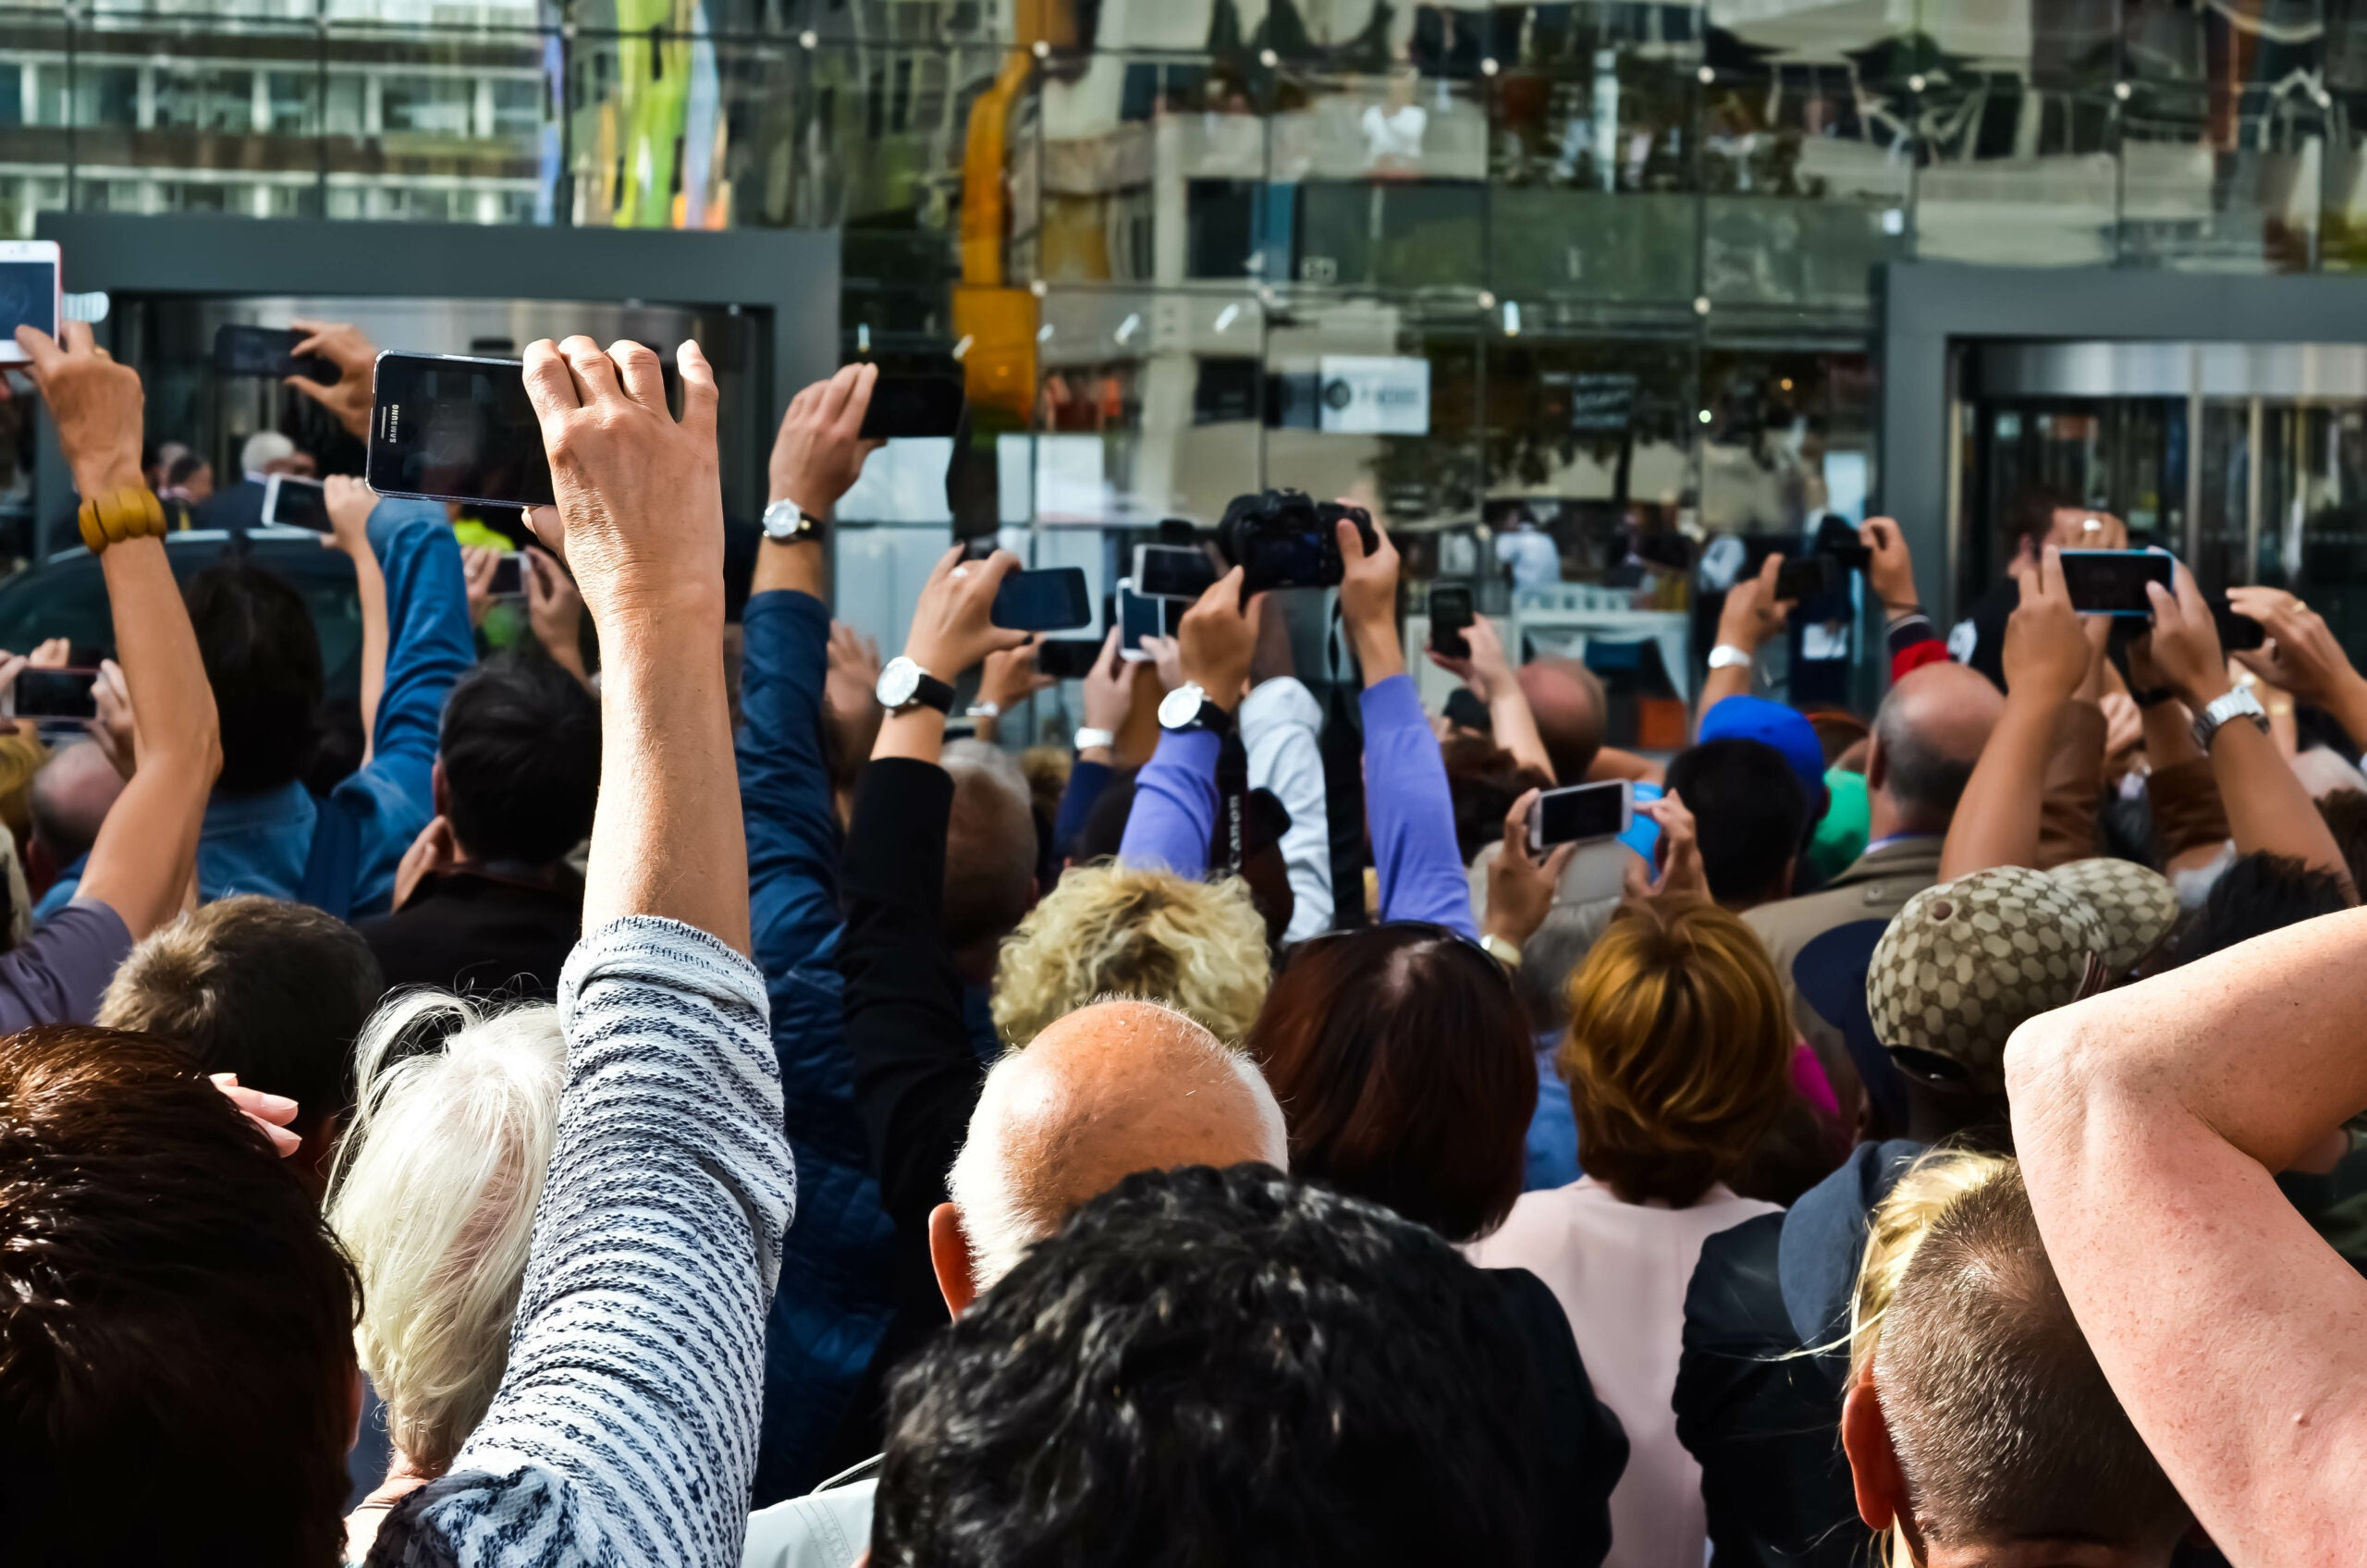 people holding up phones in crowd to take photographs